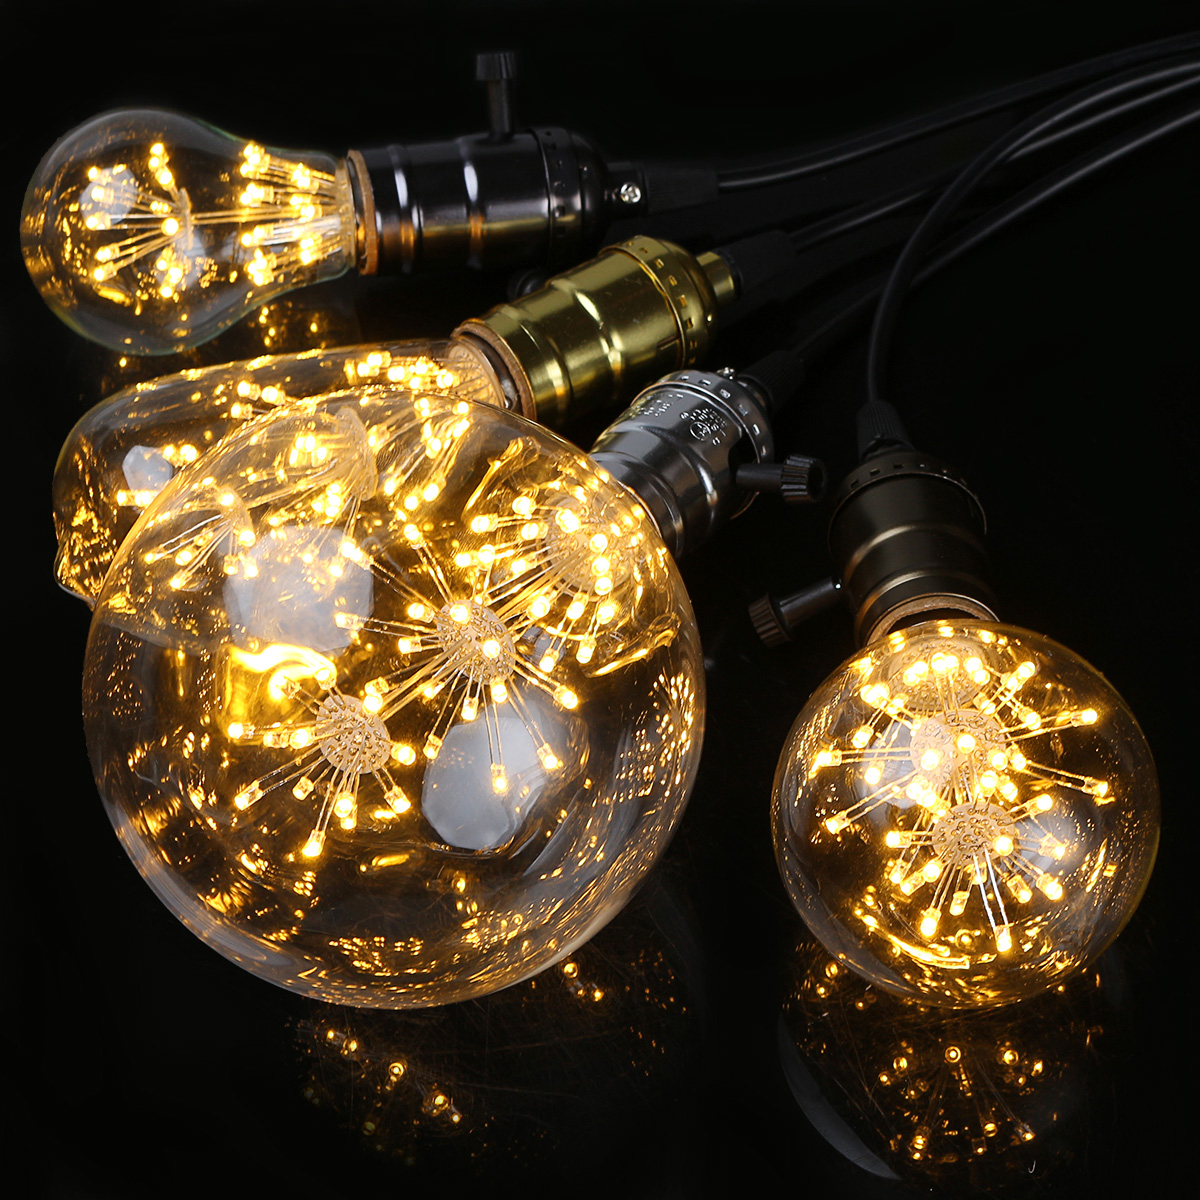 e27 3w vintage retro style edison led filament decorative. Black Bedroom Furniture Sets. Home Design Ideas